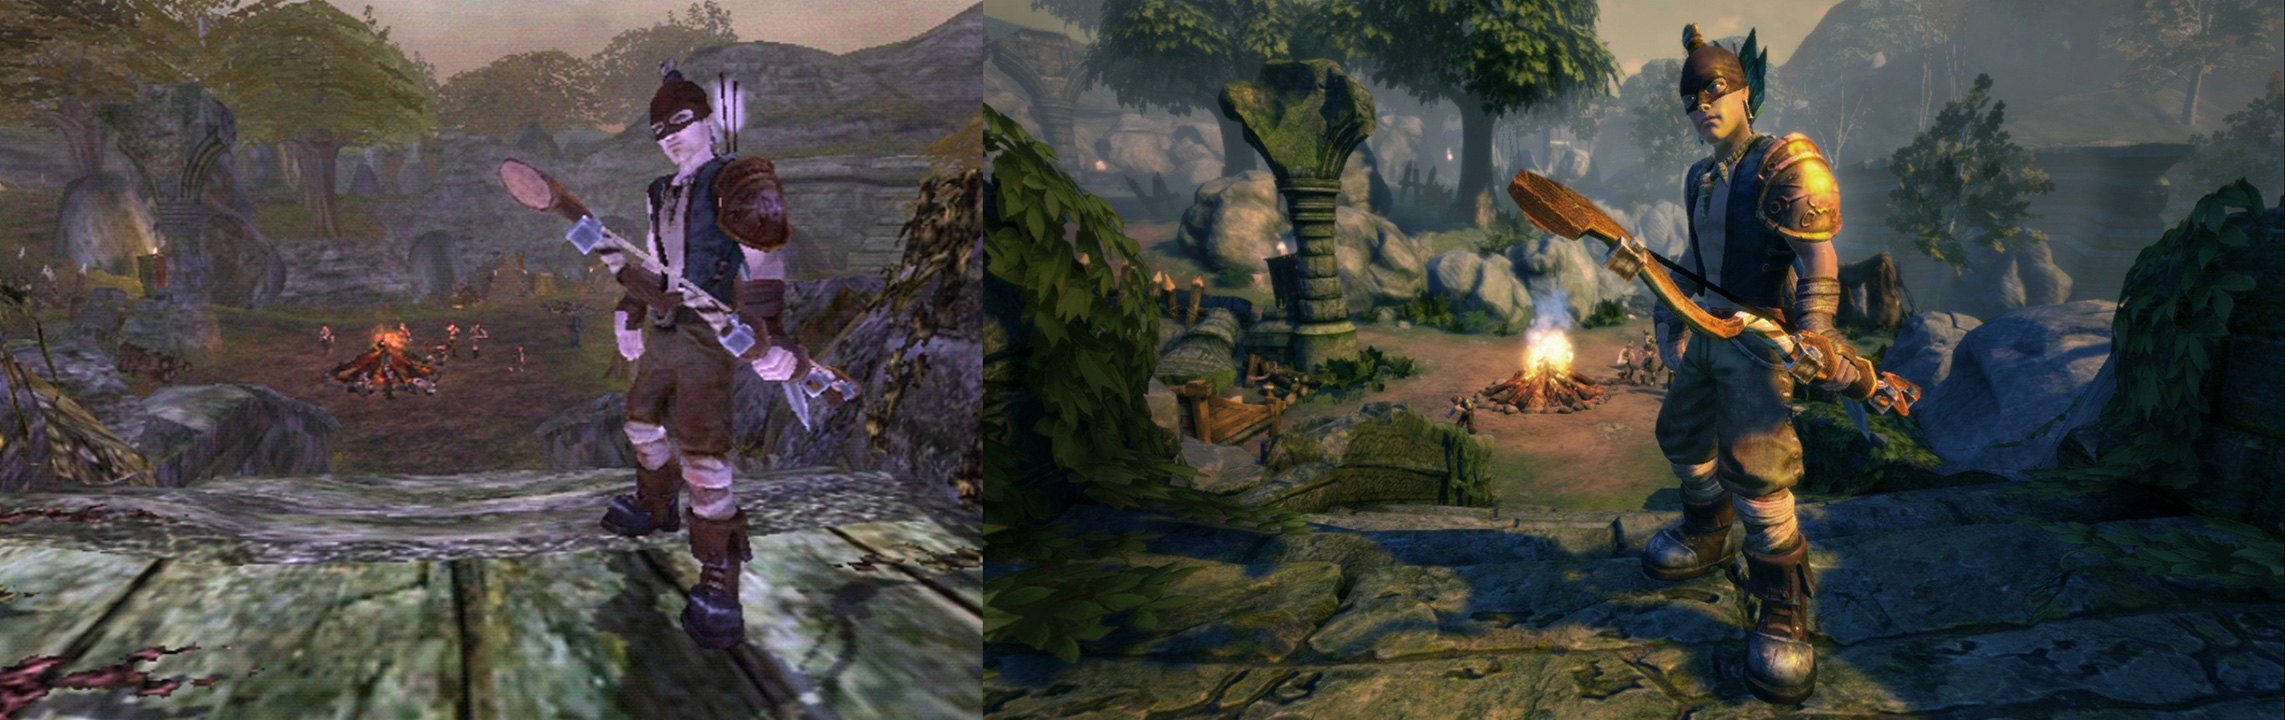 Fable Anniversary a labor of love for Lionhead